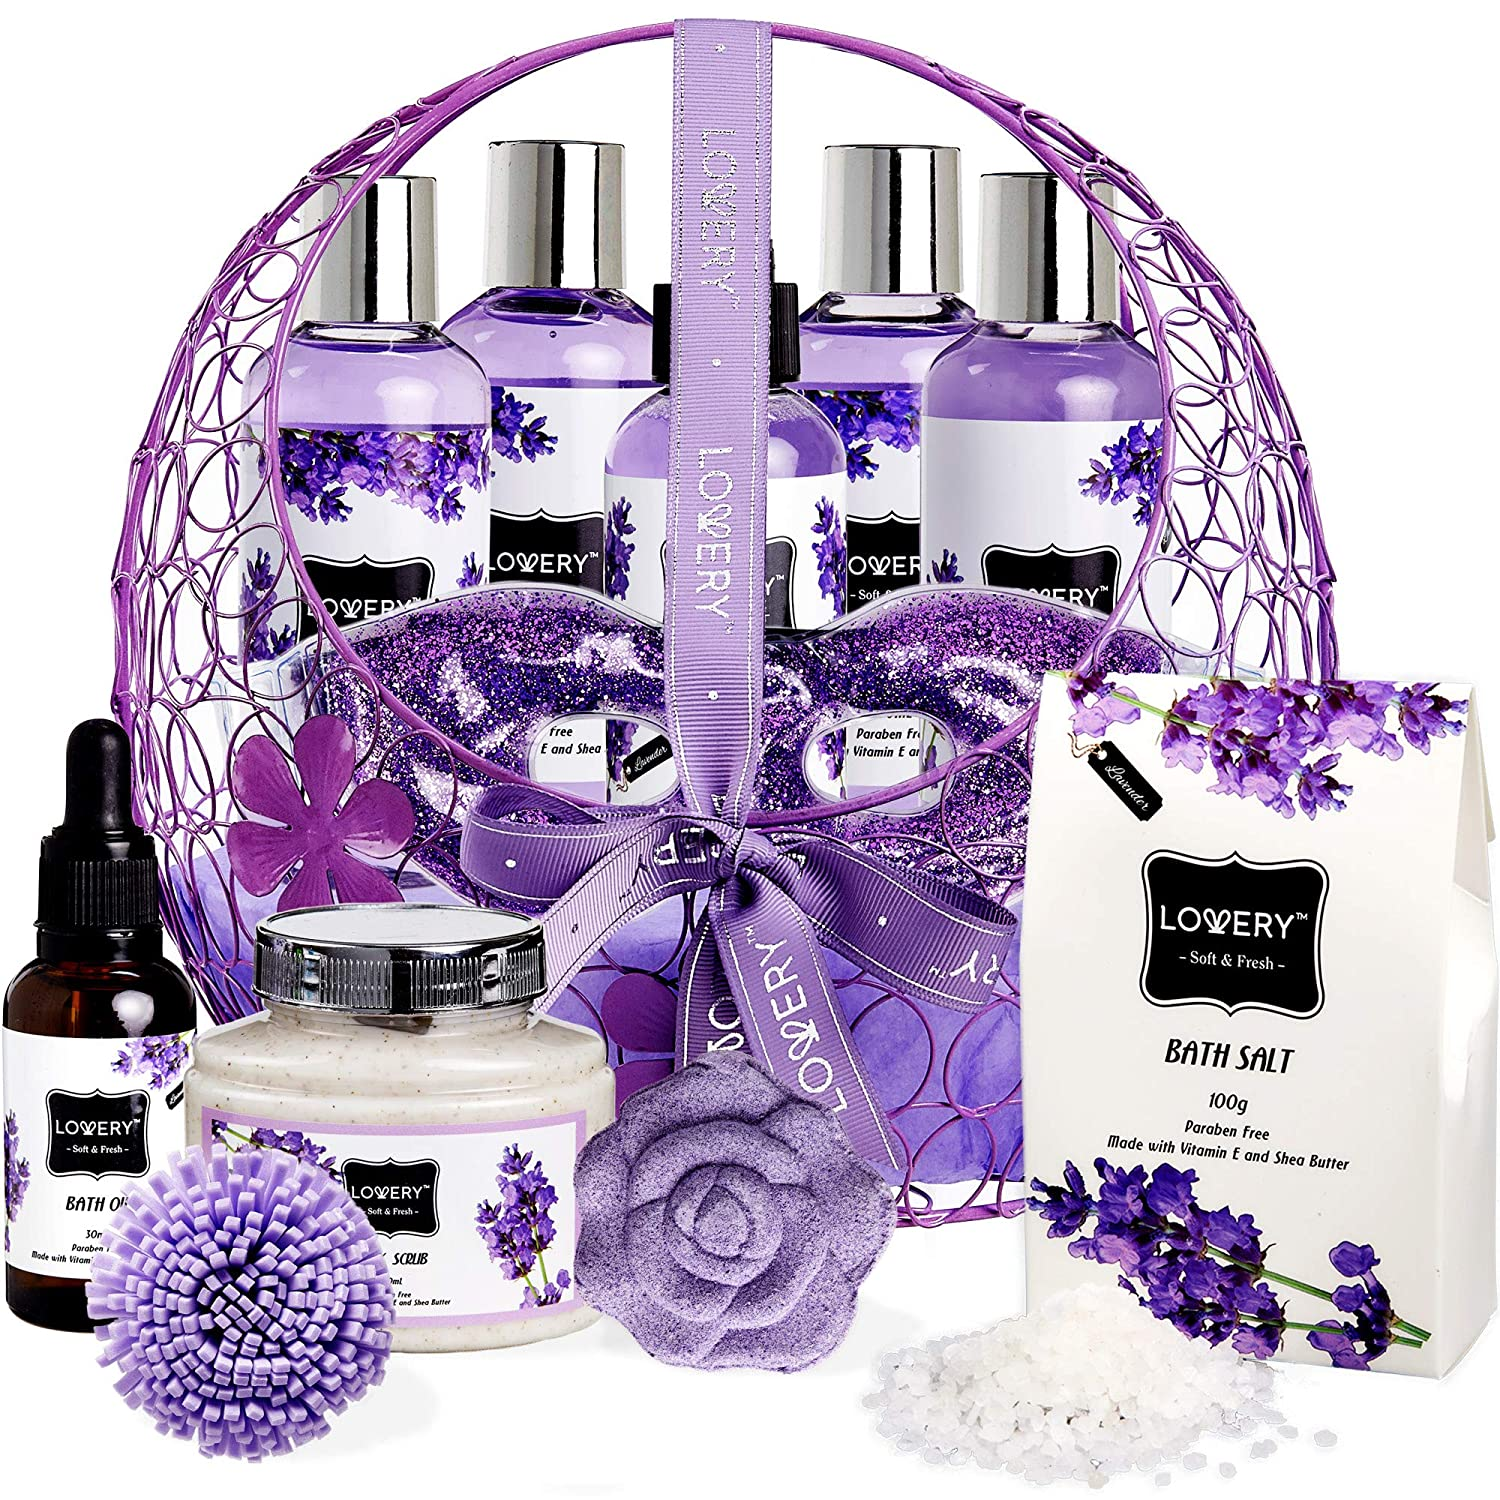 Bath and Body Gift Basket For Women – Lavender and Jasmine Home Spa Set, Including Hot and Cold Gel Eye Mask, Bath Bombs, Massage Oil, Purple Wired Candy Dish and More - 12 Piece Set Lovery